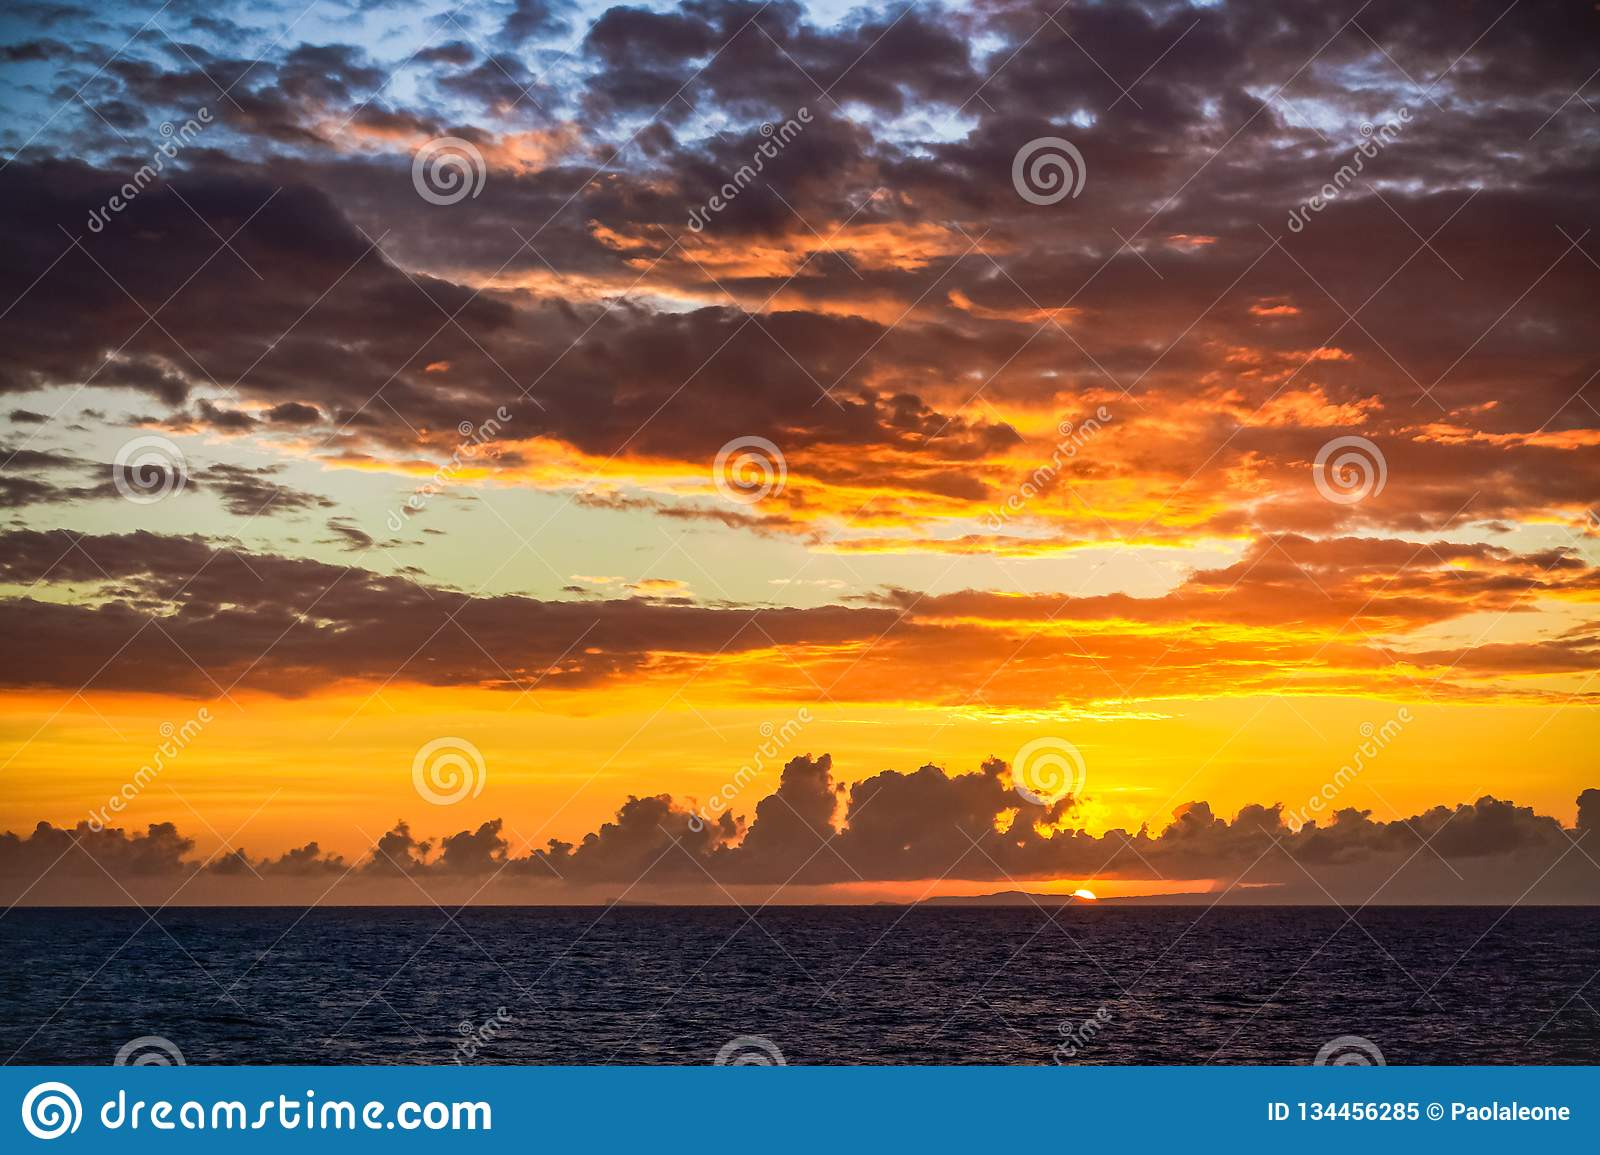 Scenic Sunset on Caribbean Sea with Dark Clouds against an Orange and Blu  Sky. Beautiful Background.